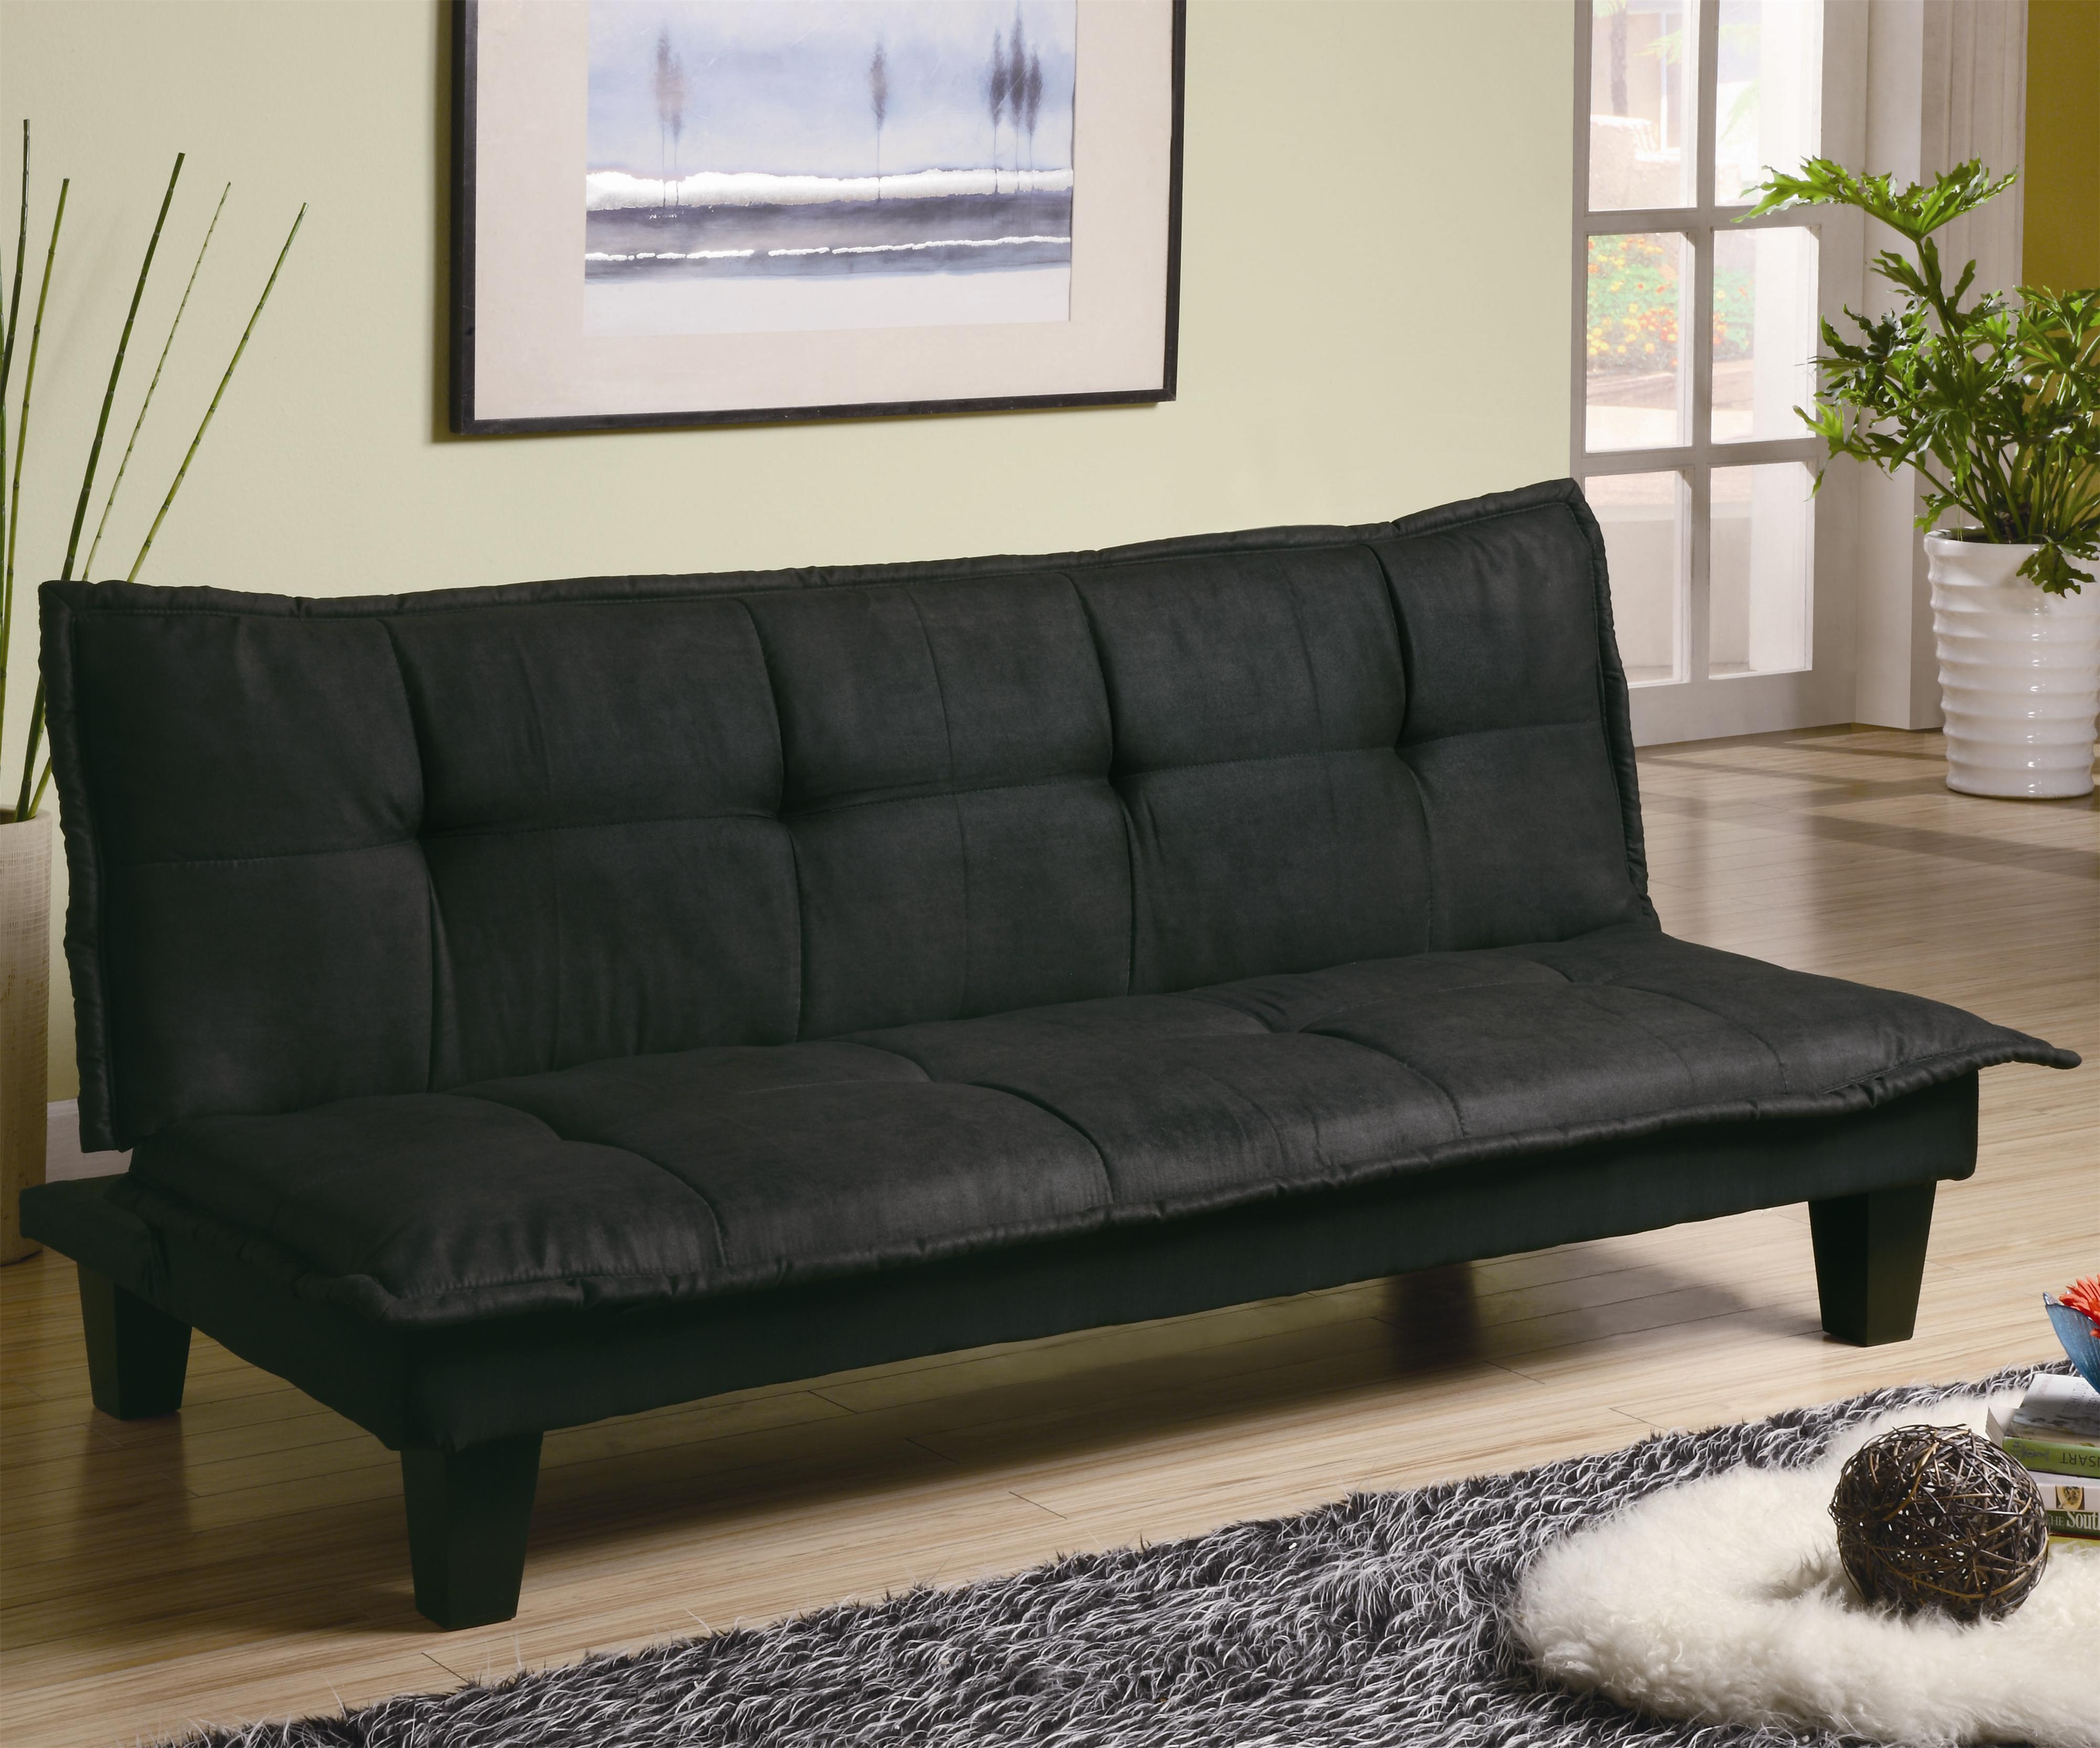 Coaster Sofa Beds and Futons -  Sofa Bed - Item Number: 300238